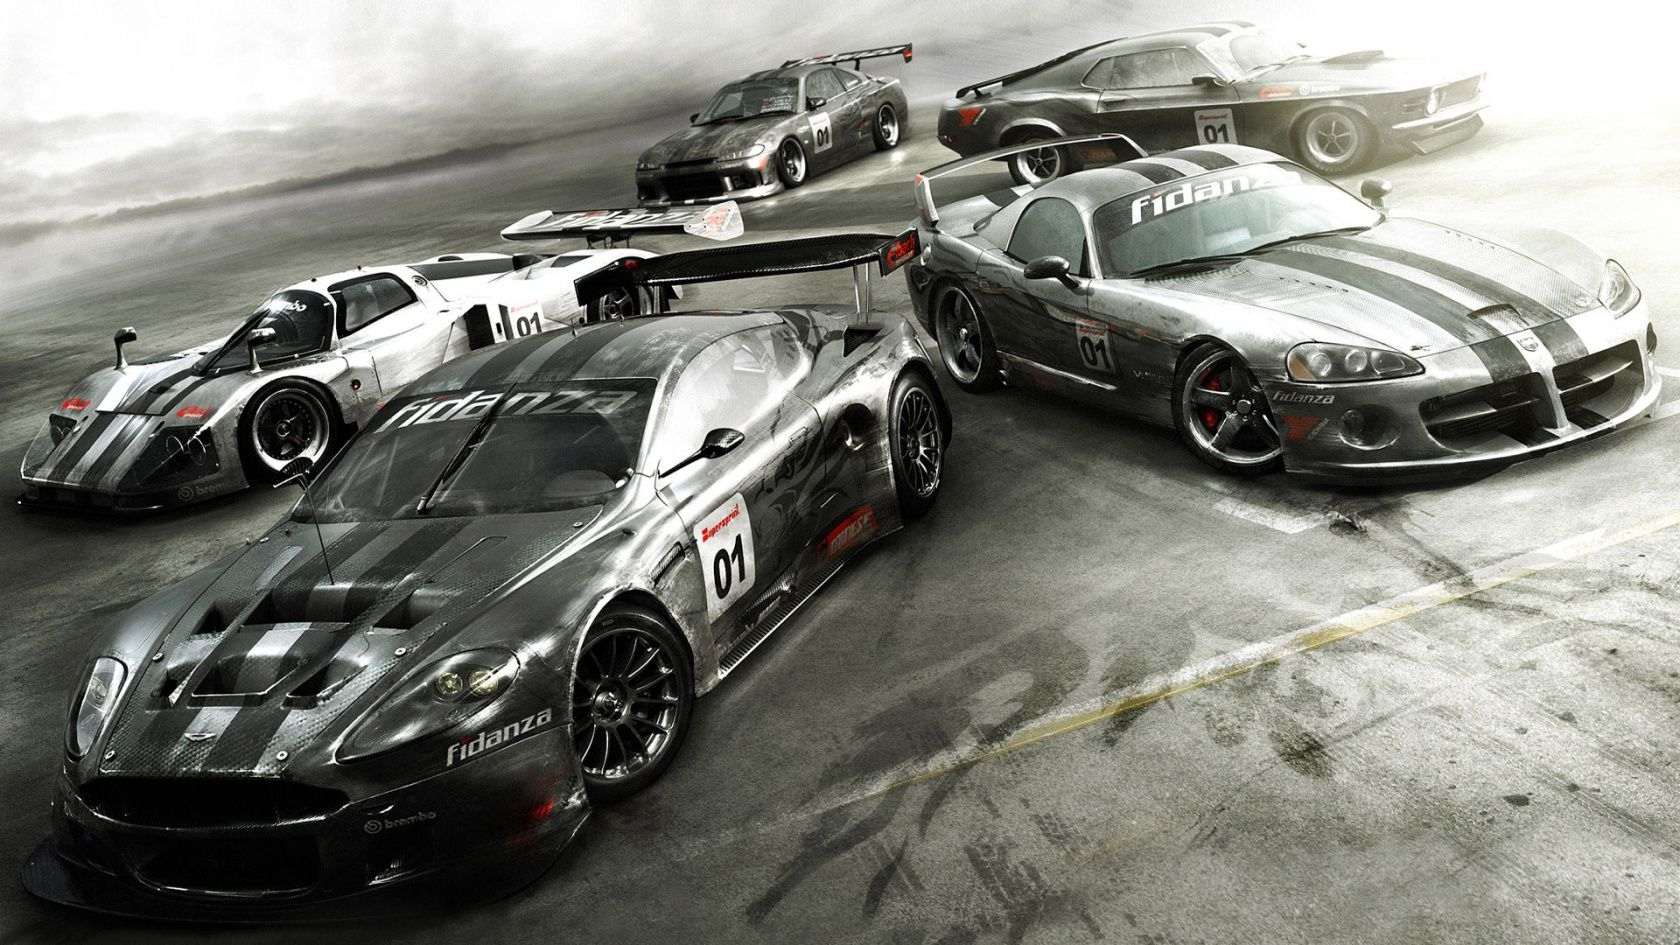 Cool car wallpapers collection